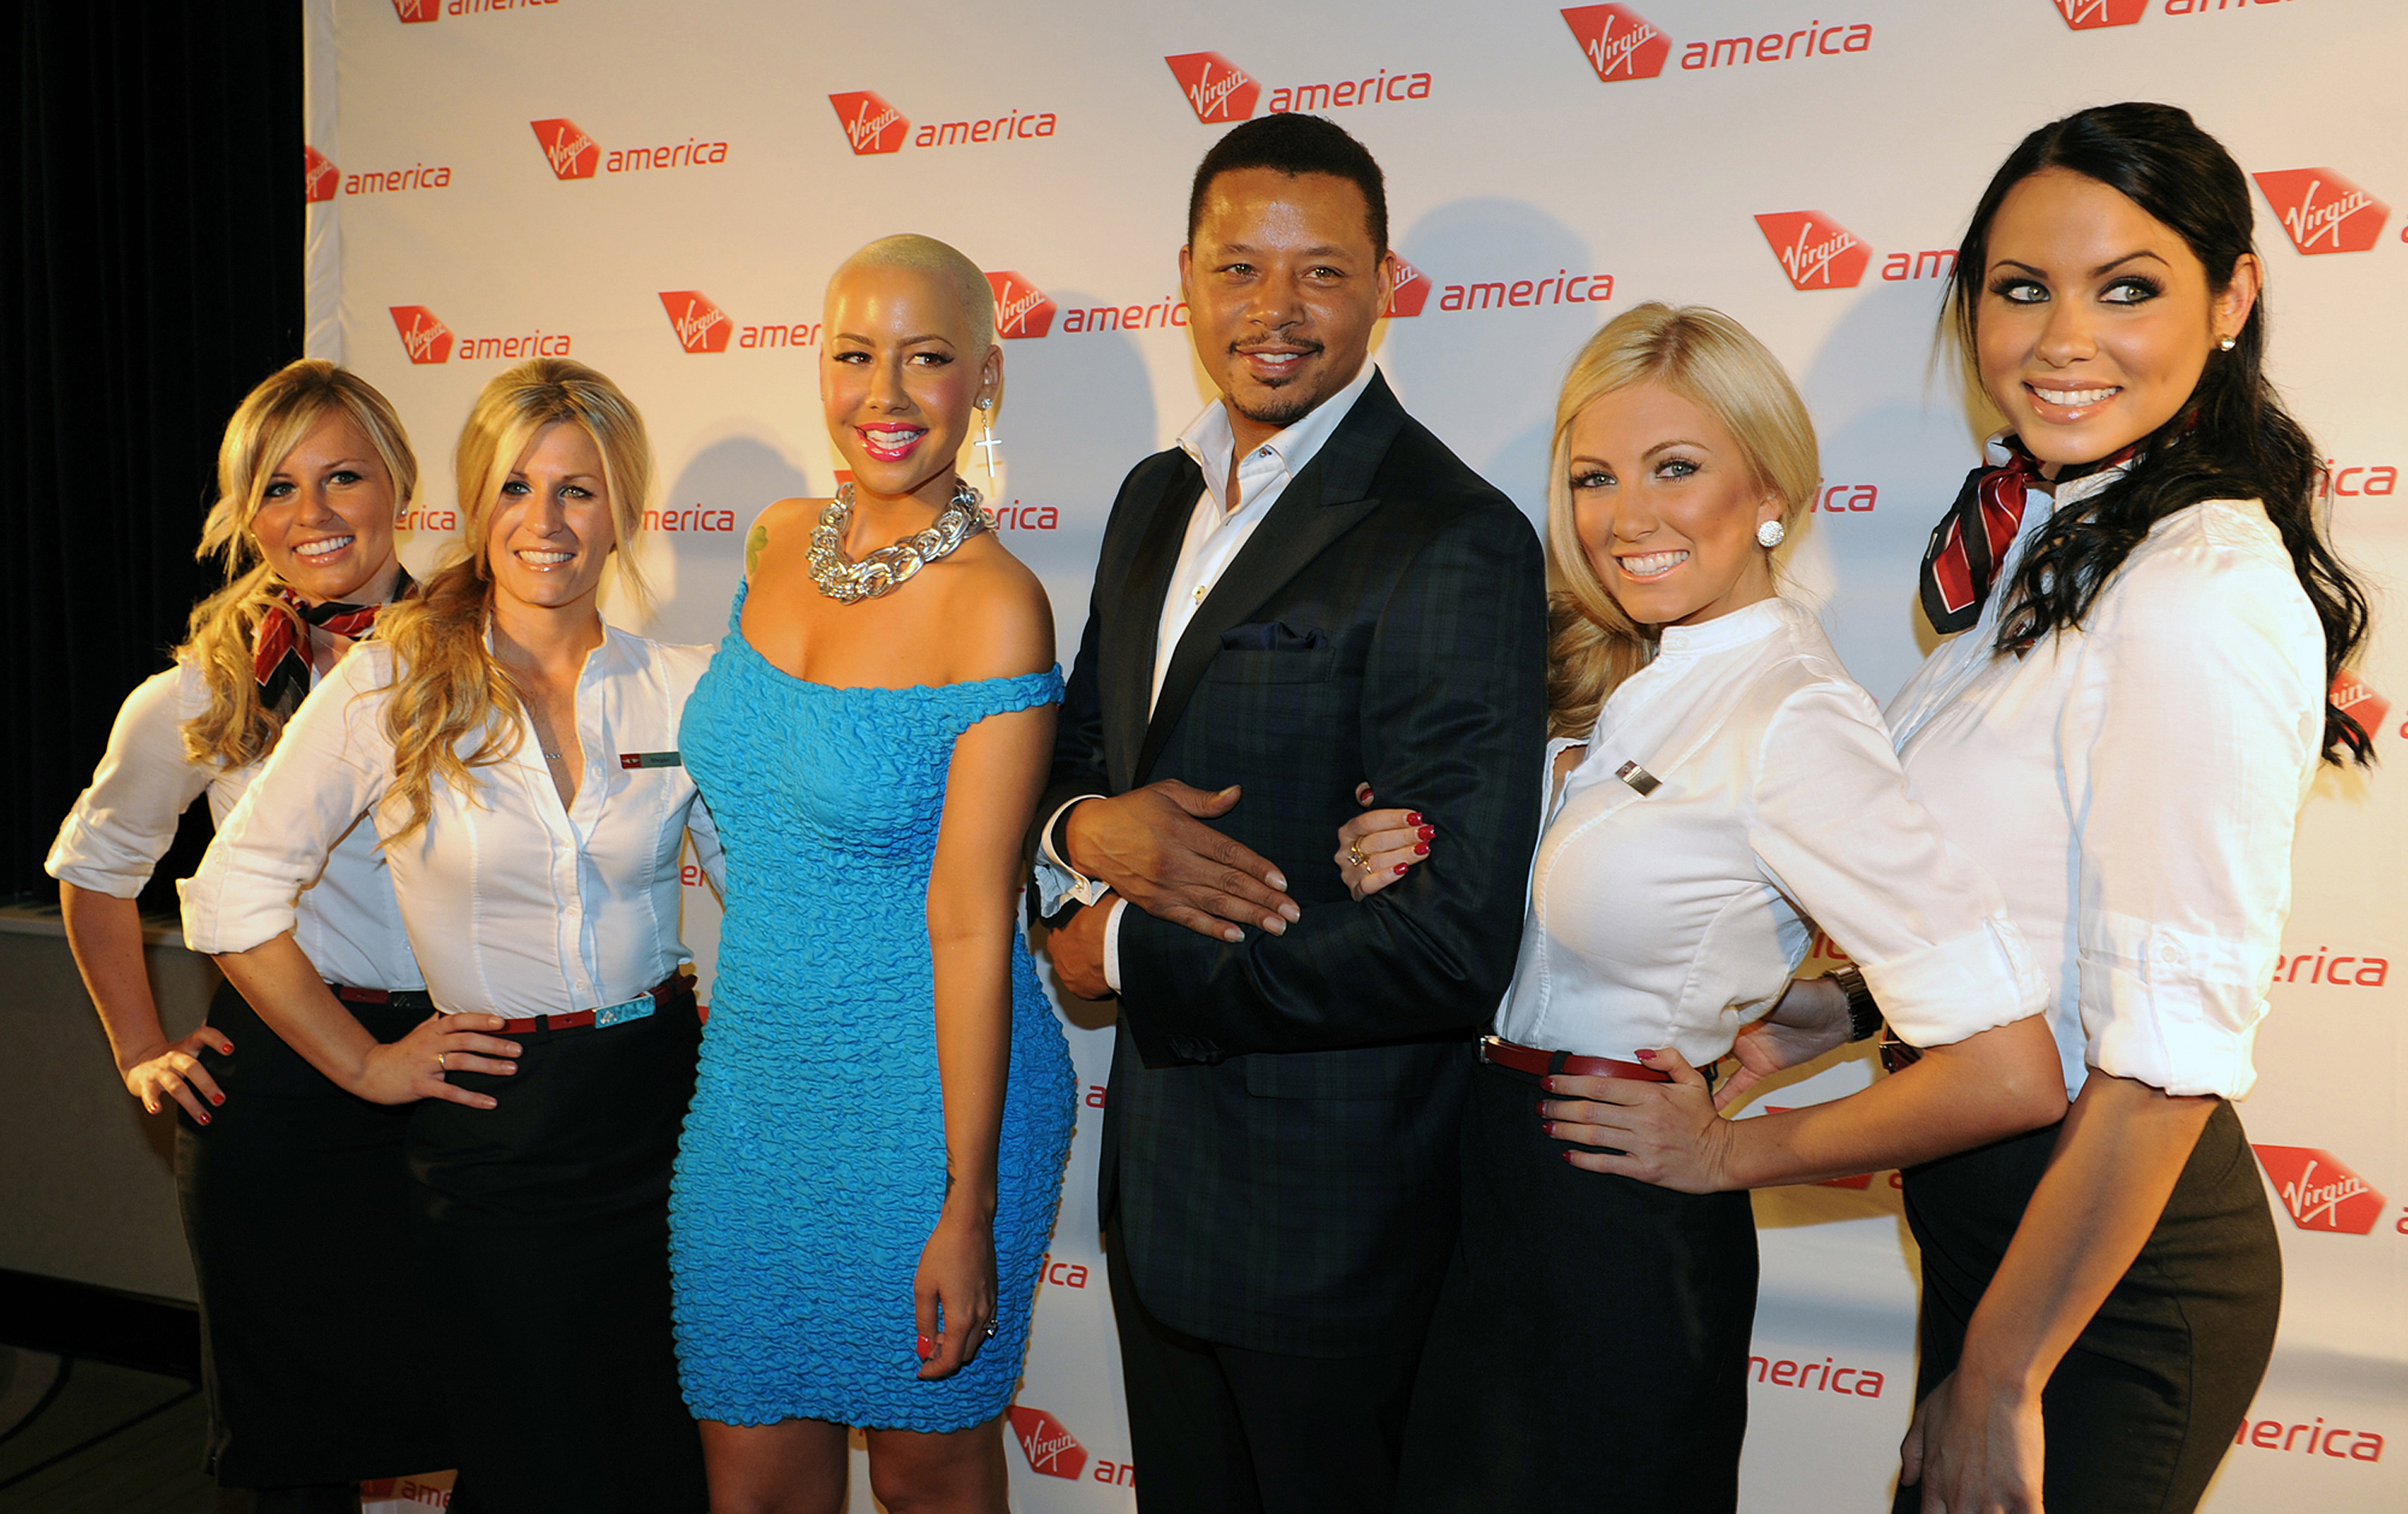 Terrence Howard and Amber Rose pose on the red carpet with Virgin America in-flight teammates at the Philadelphia hotspot, Hotel Palomar, to celebrate arrival of Virgin America\'s Inaugural Flight. (Bloomberg Photo/Virgin America Airlines, Bob Riha, Jr.)